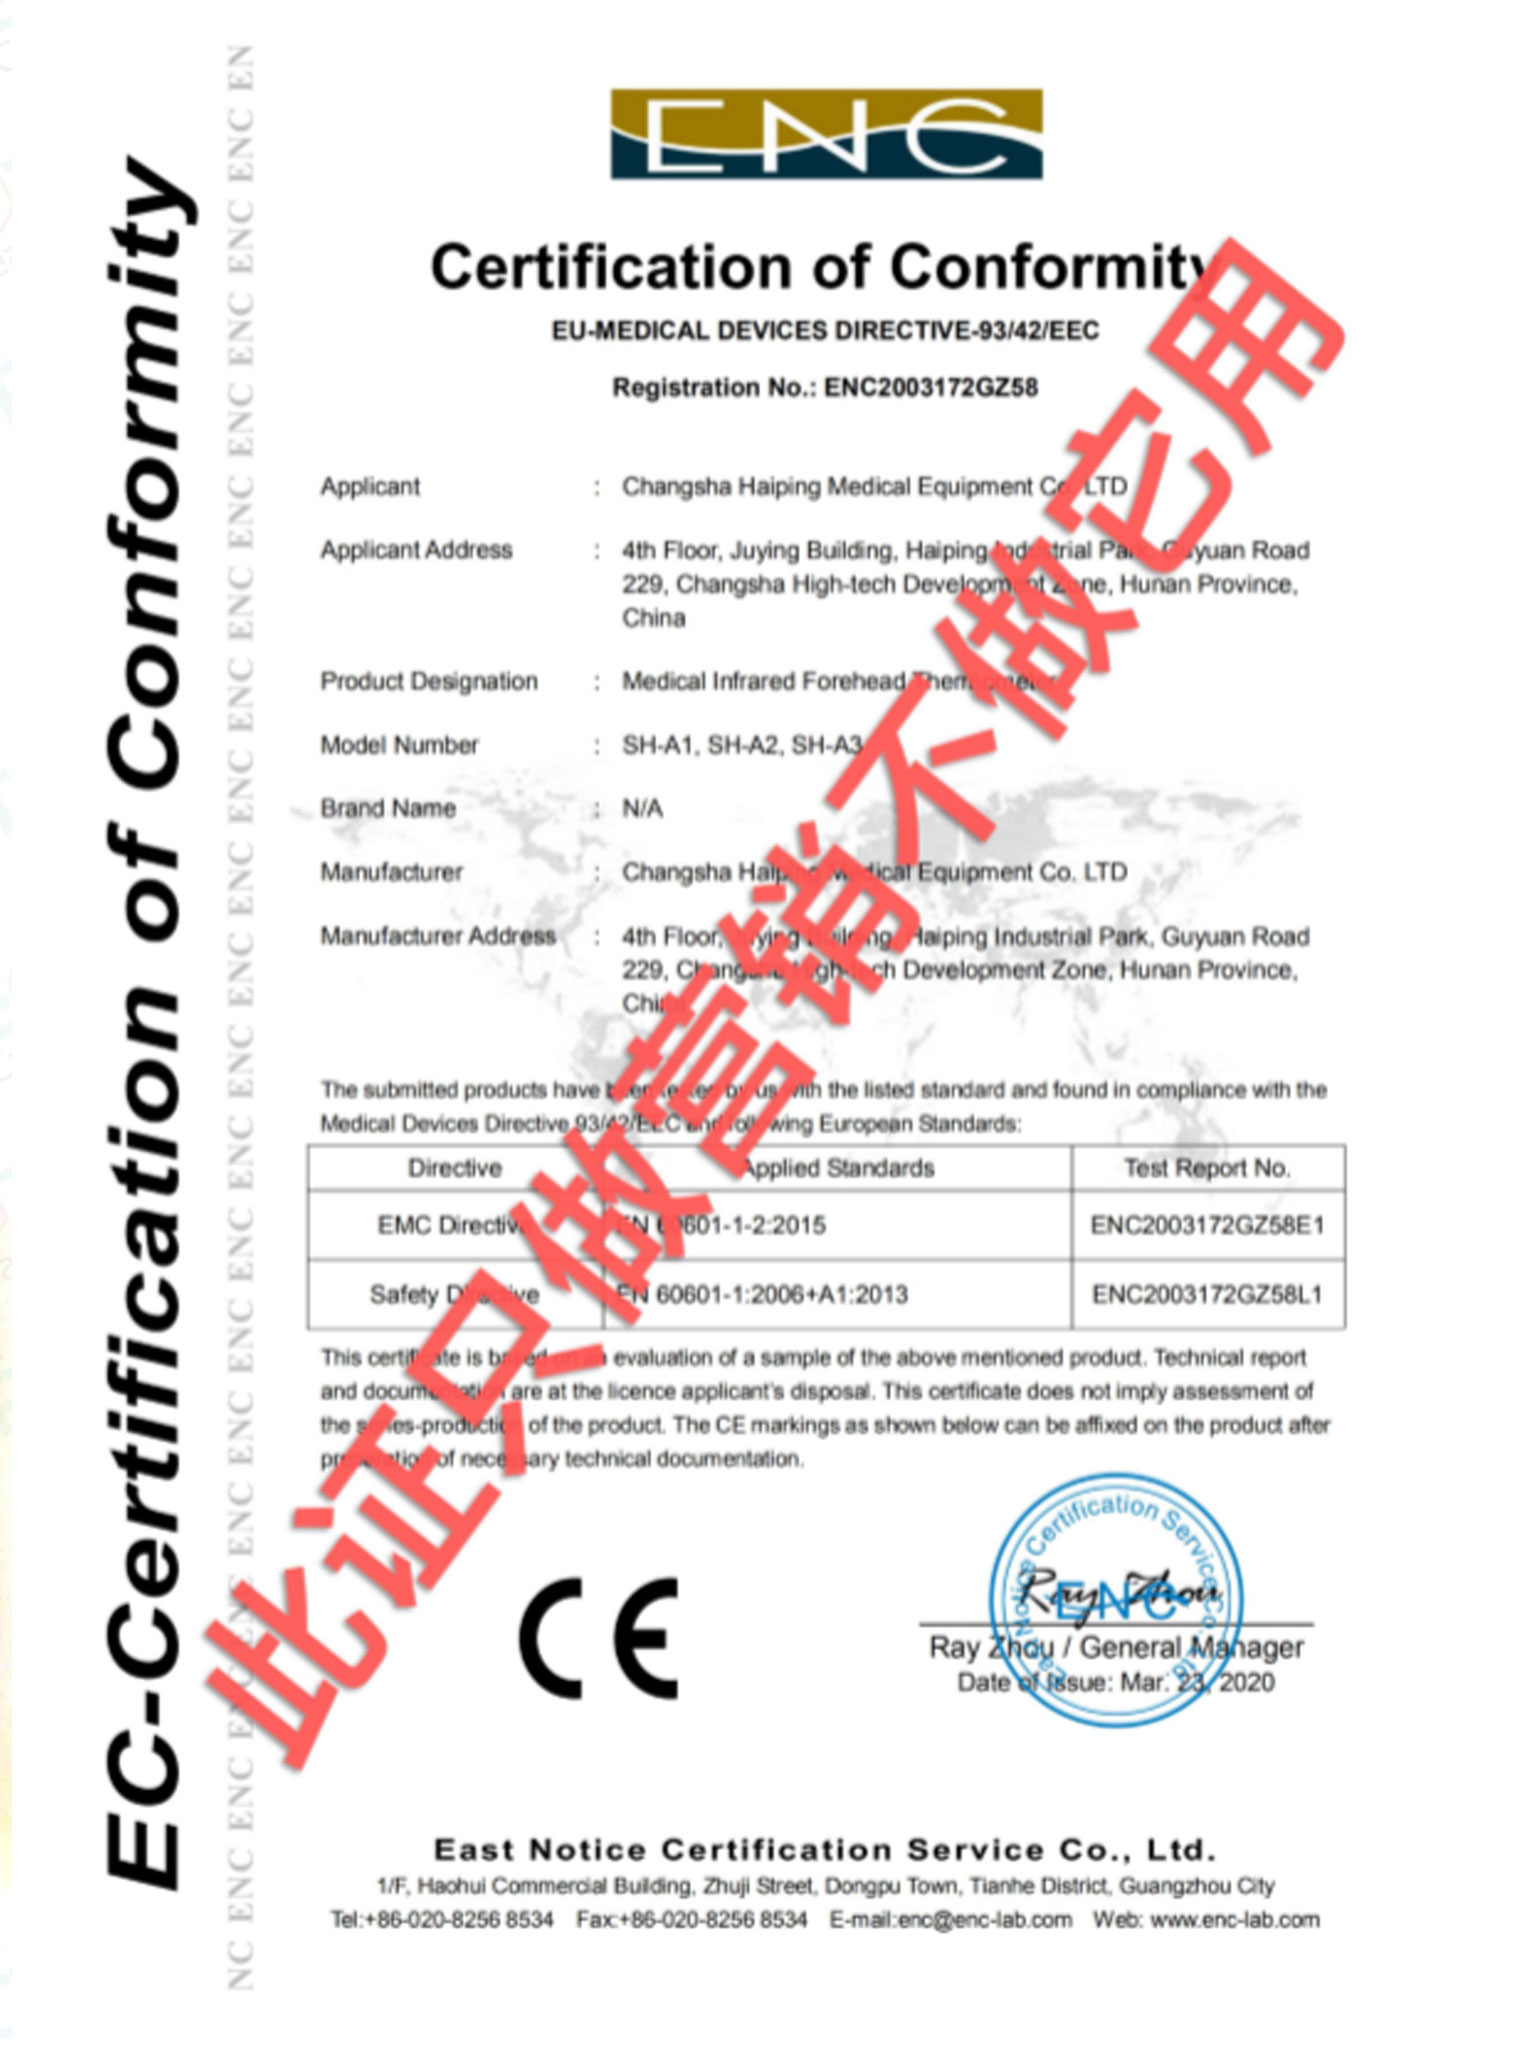 EC Certification of conformity